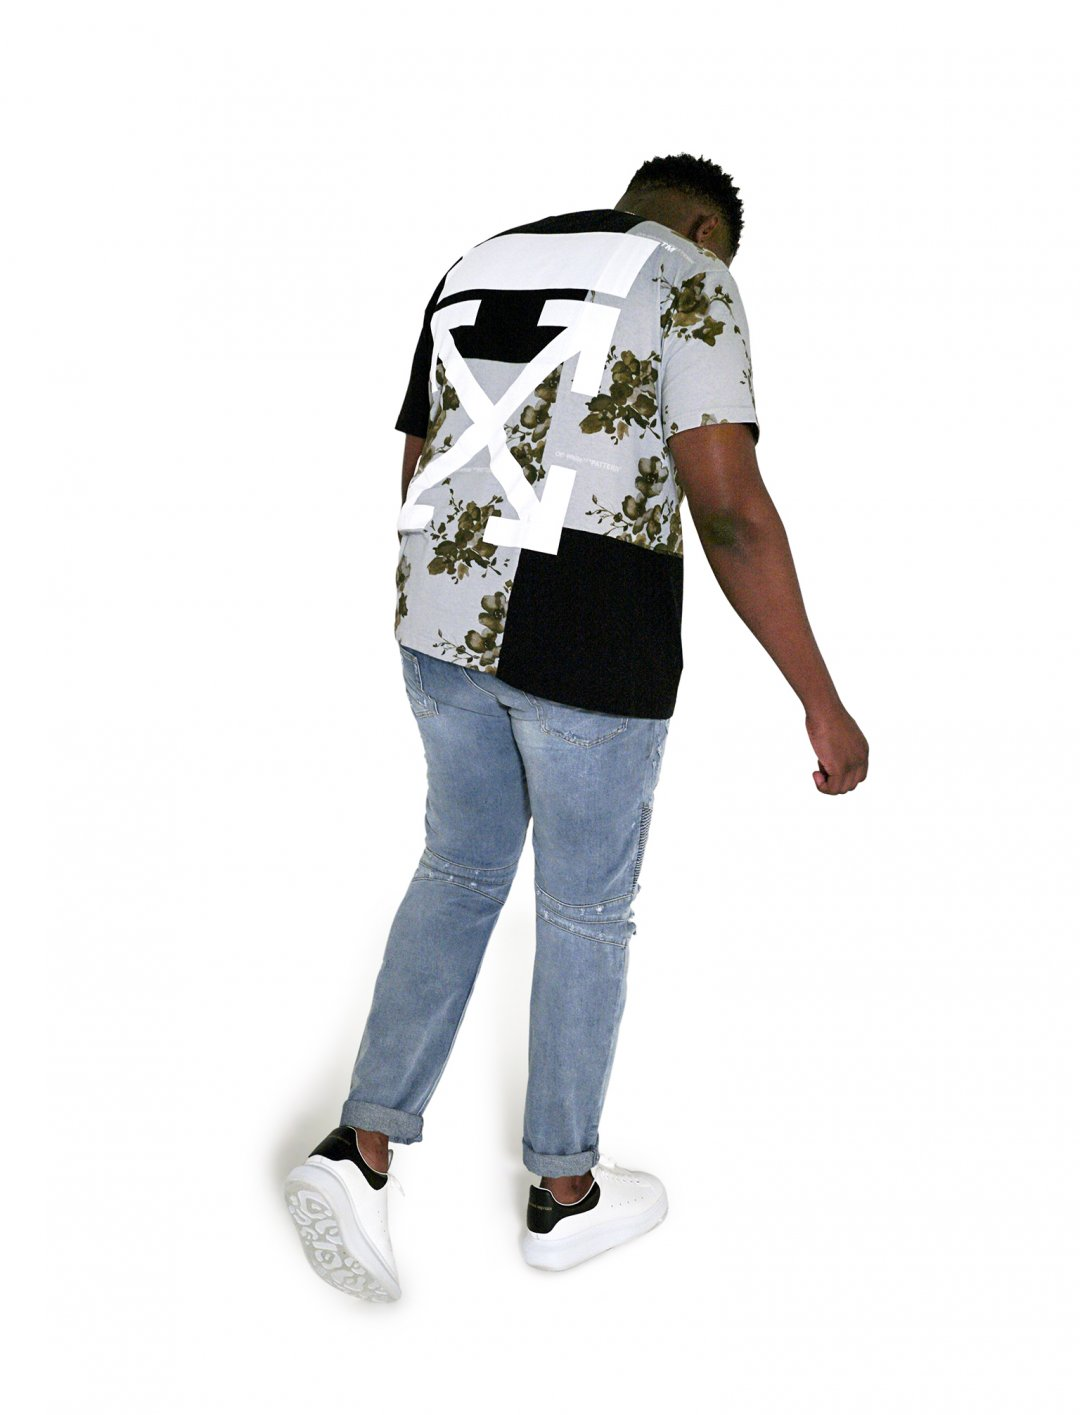 "Lotto Boyzz' Floral Print T-Shirt {""id"":5,""product_section_id"":1,""name"":""Clothing"",""order"":5} Off - White x Browns"